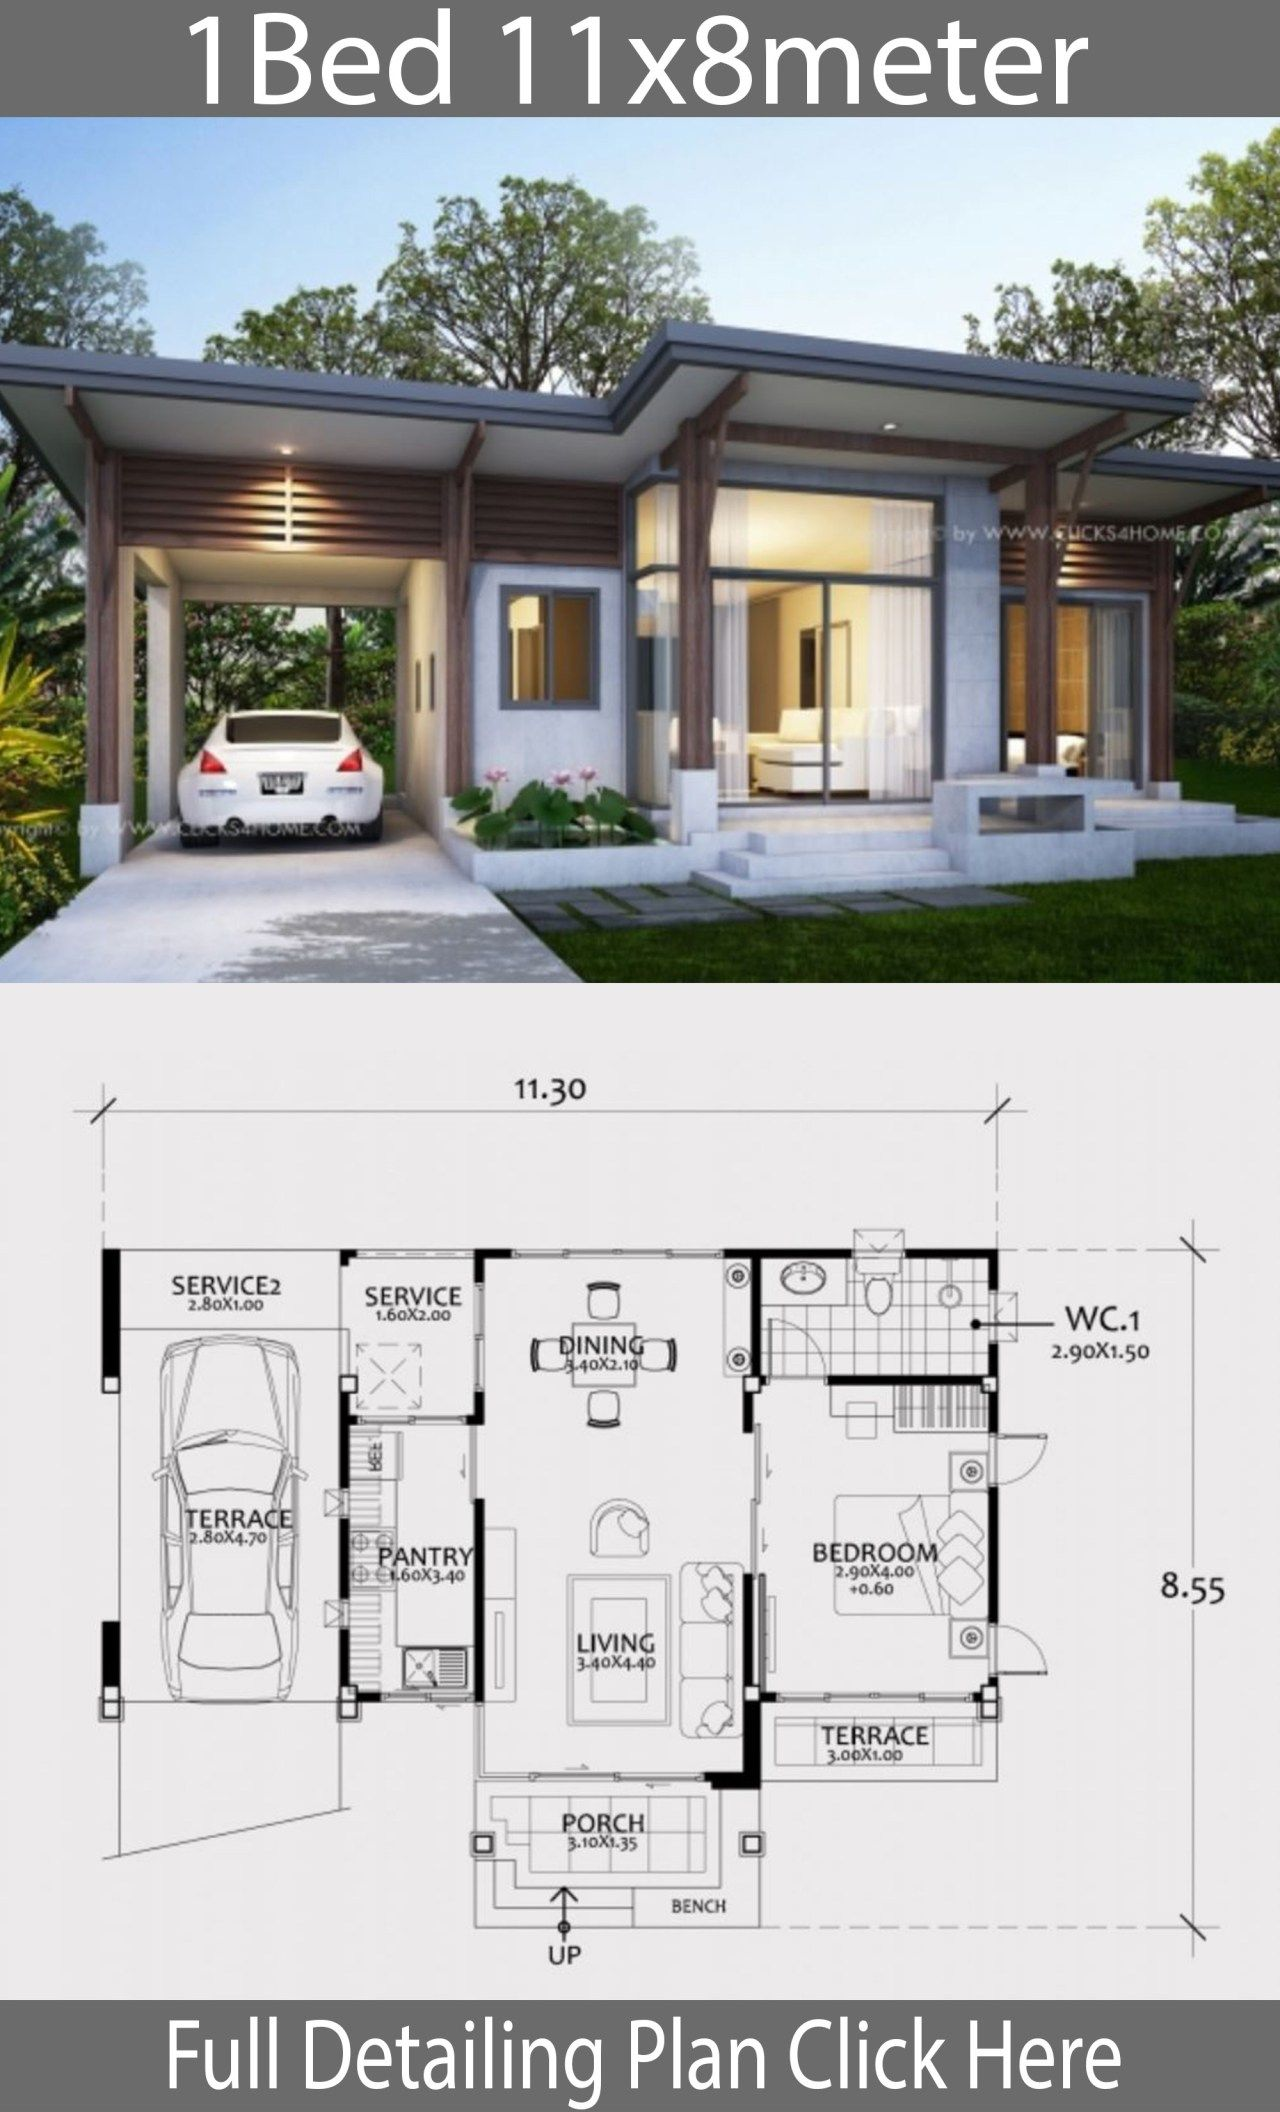 Home Design Plan 11x8m With One Bedroom Home Ideas Contemporary House Plans Modern Bungalow House Small Modern House Plans